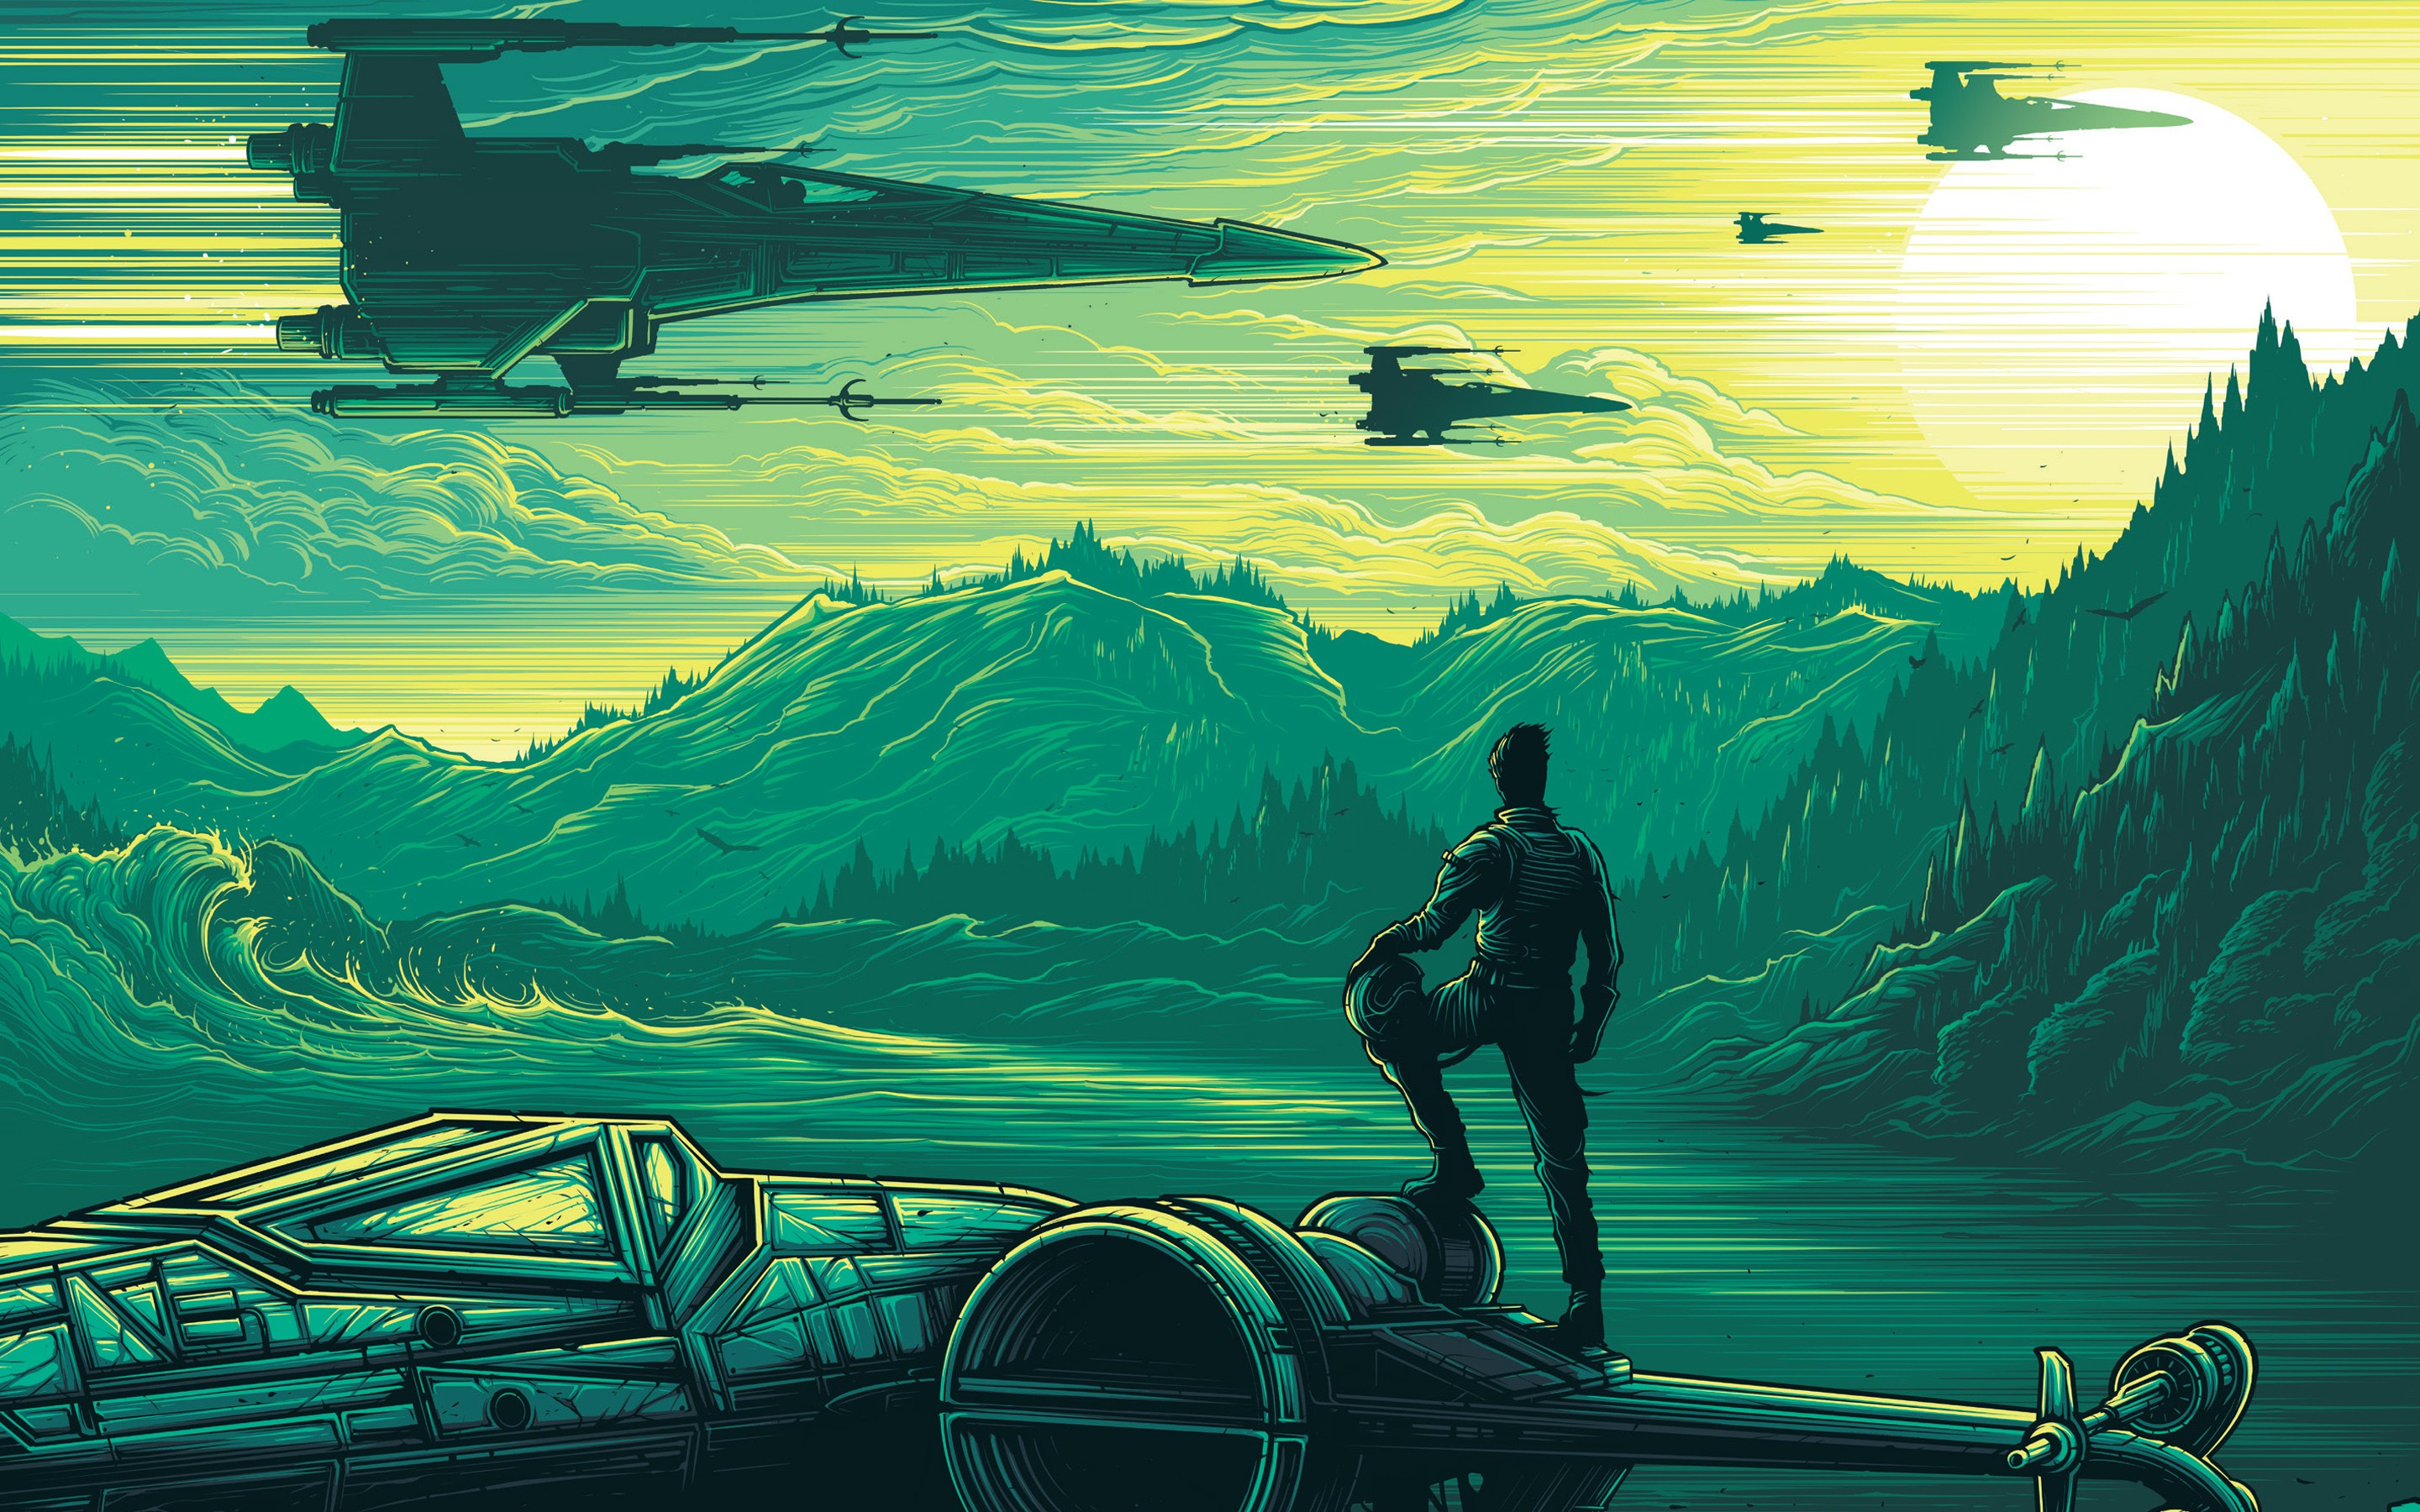 Force Awakens Wallpaper Download Free Awesome High Resolution